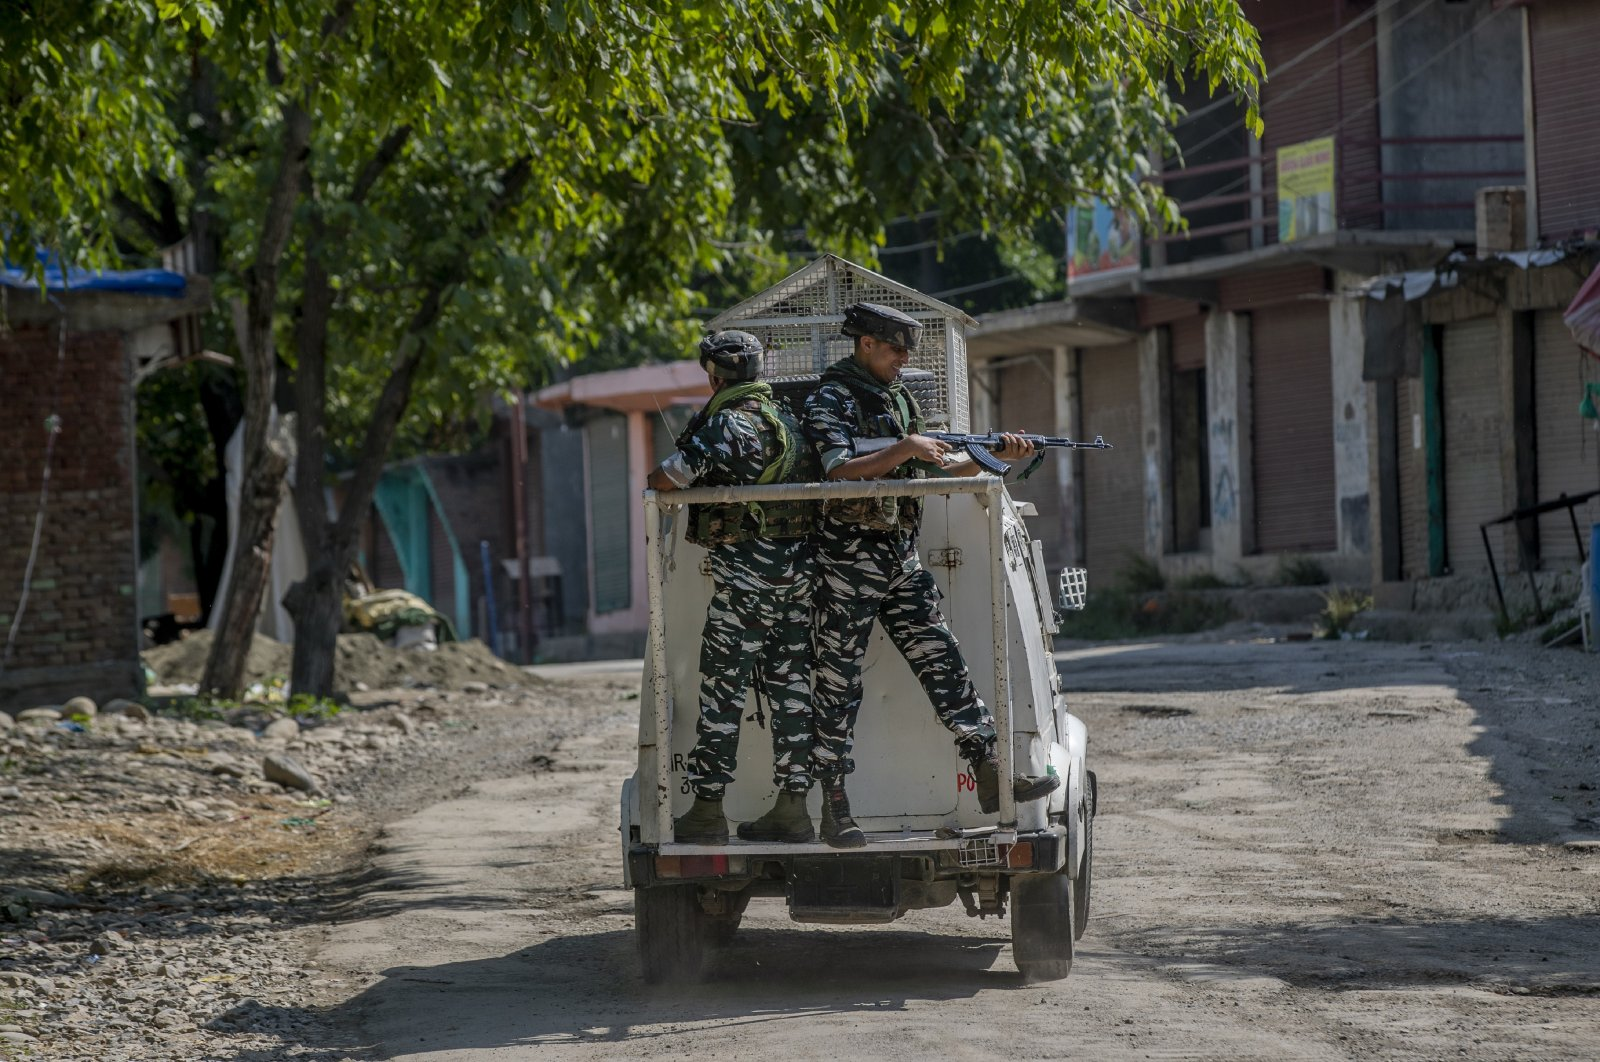 Indian paramilitary soldiers stand guard on an armored vehicle as they move toward the site of a gunfight in Pulwama, south of Srinagar, Indian-controlled Kashmir, July 2, 2021. (AP Photo)